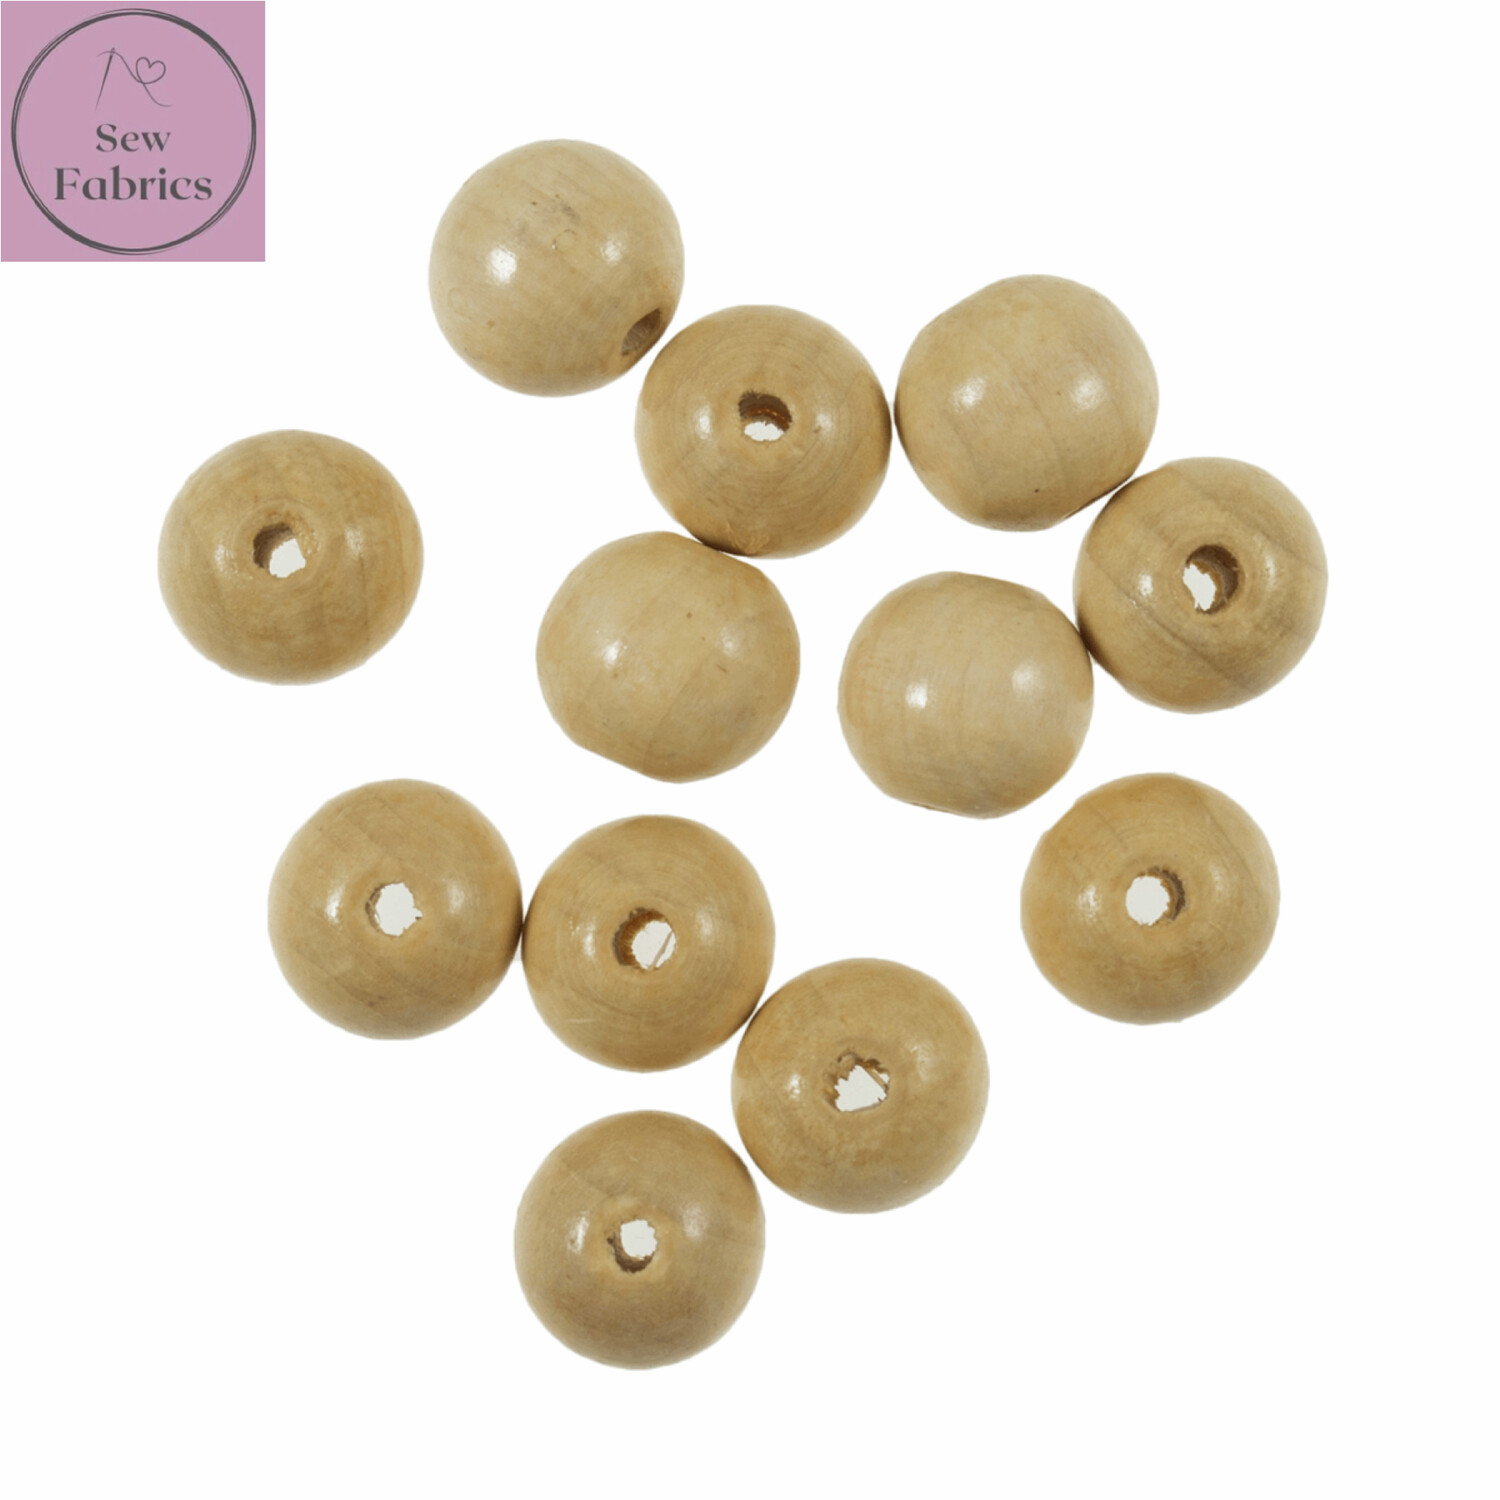 Pack of 12 x 15mm Trimits Wooden Beech Beads, Macrame, Decorations